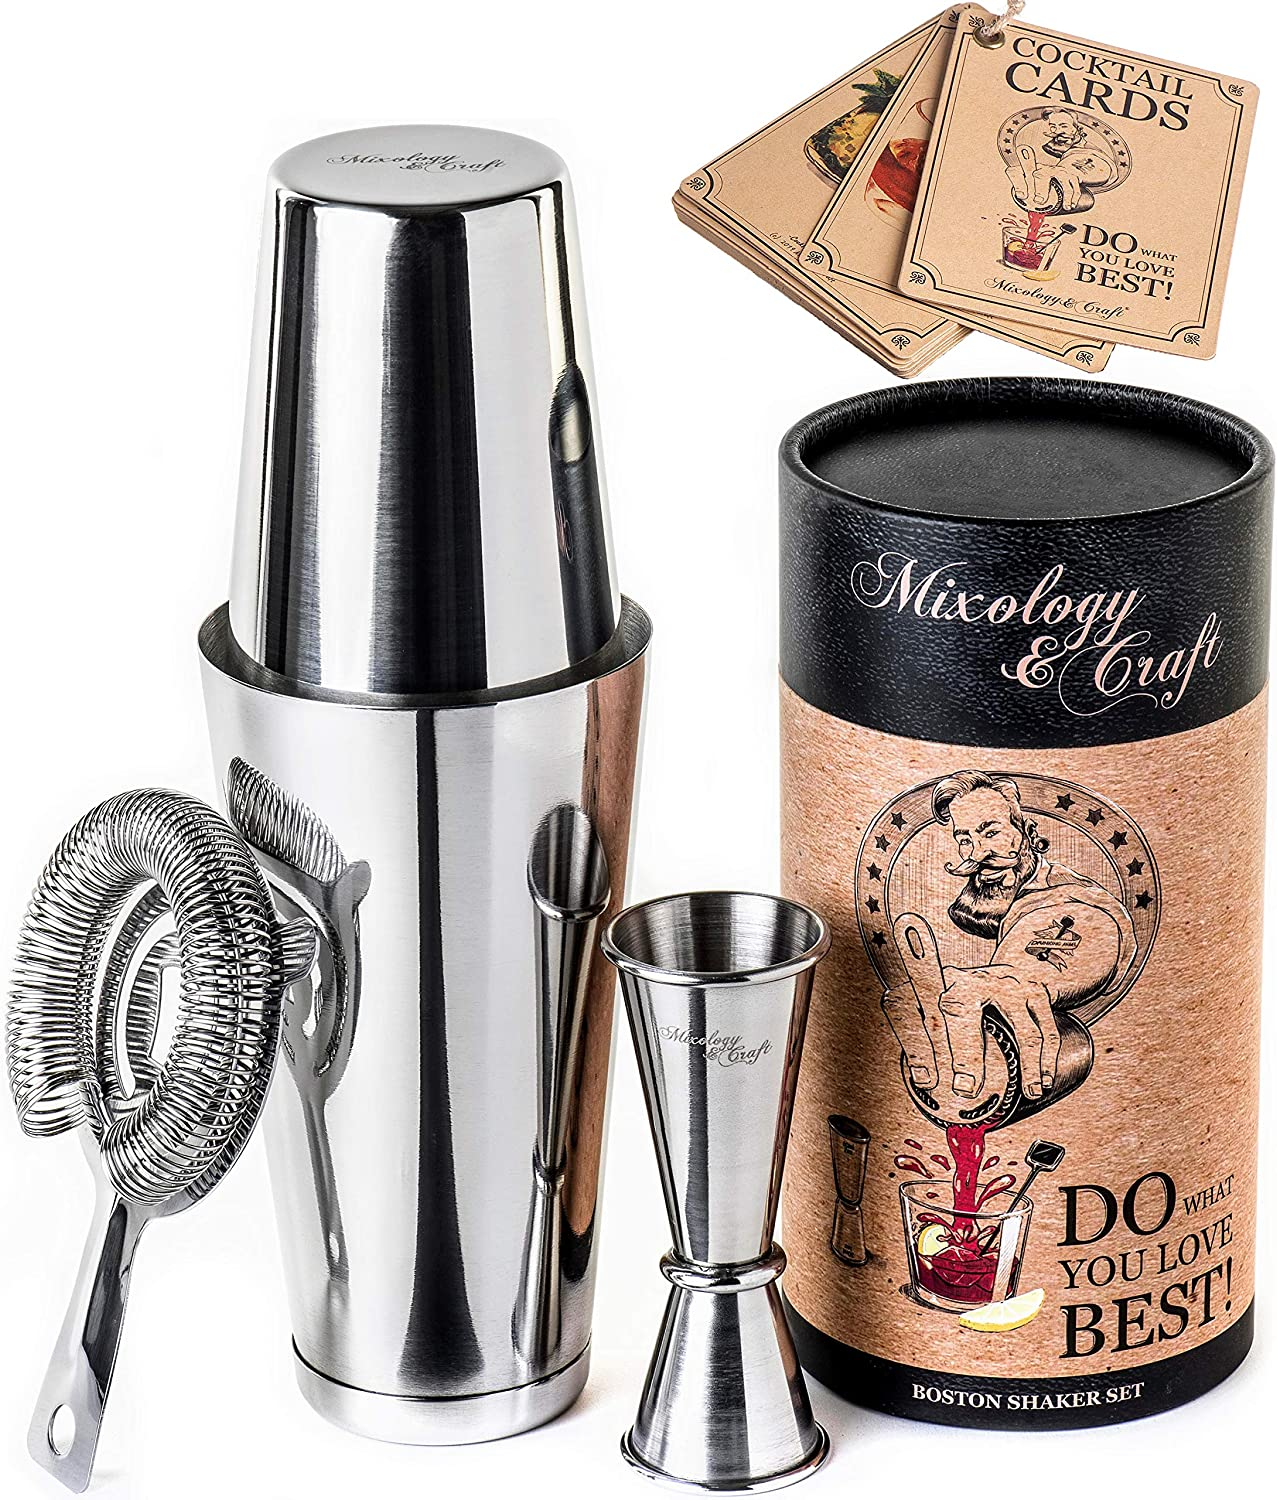 Cocktail Shaker Boston Shaker Set: Professional Weighted Martini Shakers with Cocktail Strainer and Japanese Jigger | Portable Bar Shaker Set for Drink Mixer Bartending | Exclusive Recipes Bonus